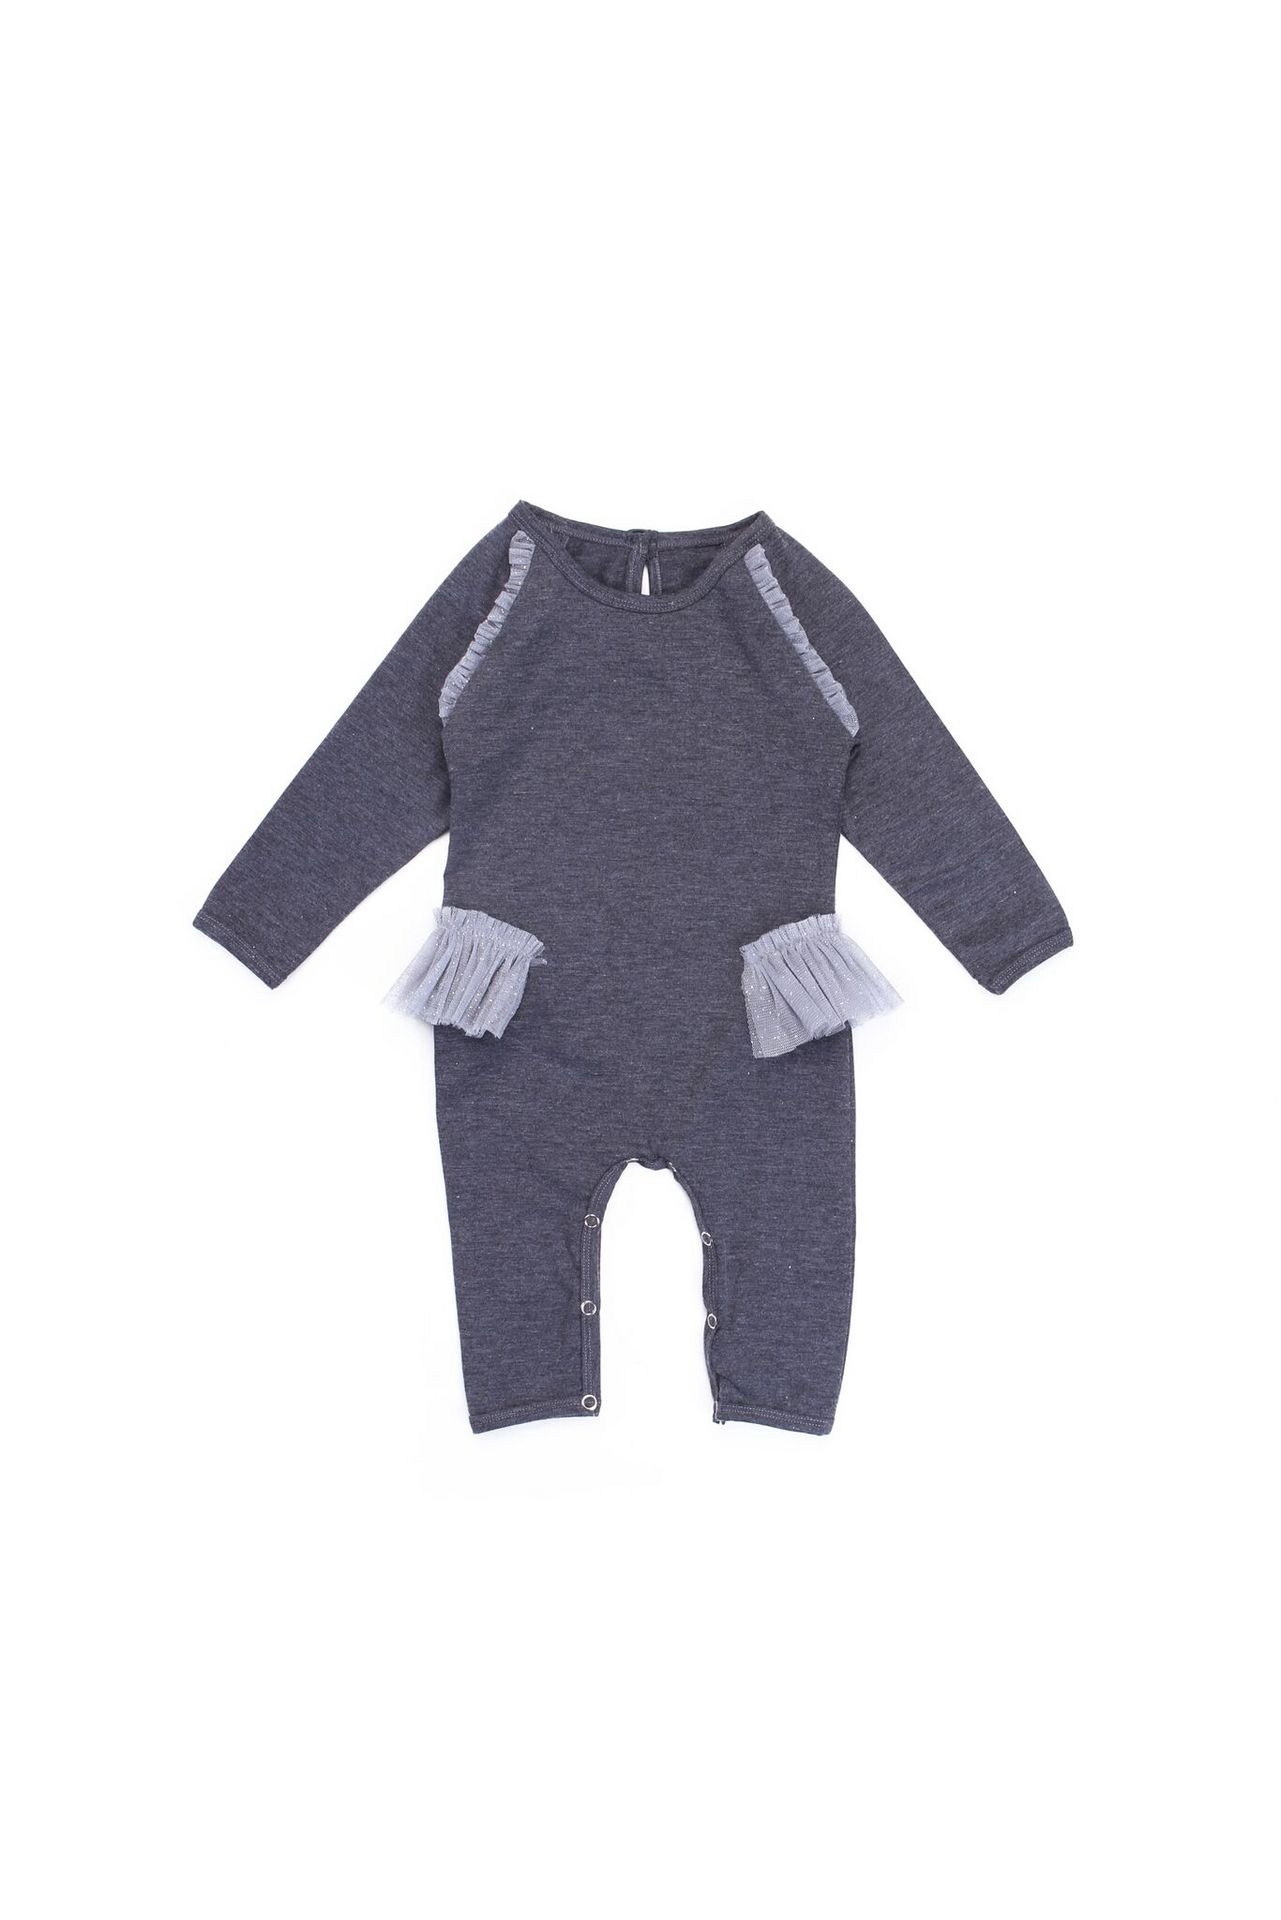 Alex and Ant Tulle Frill Onesie Charcoal